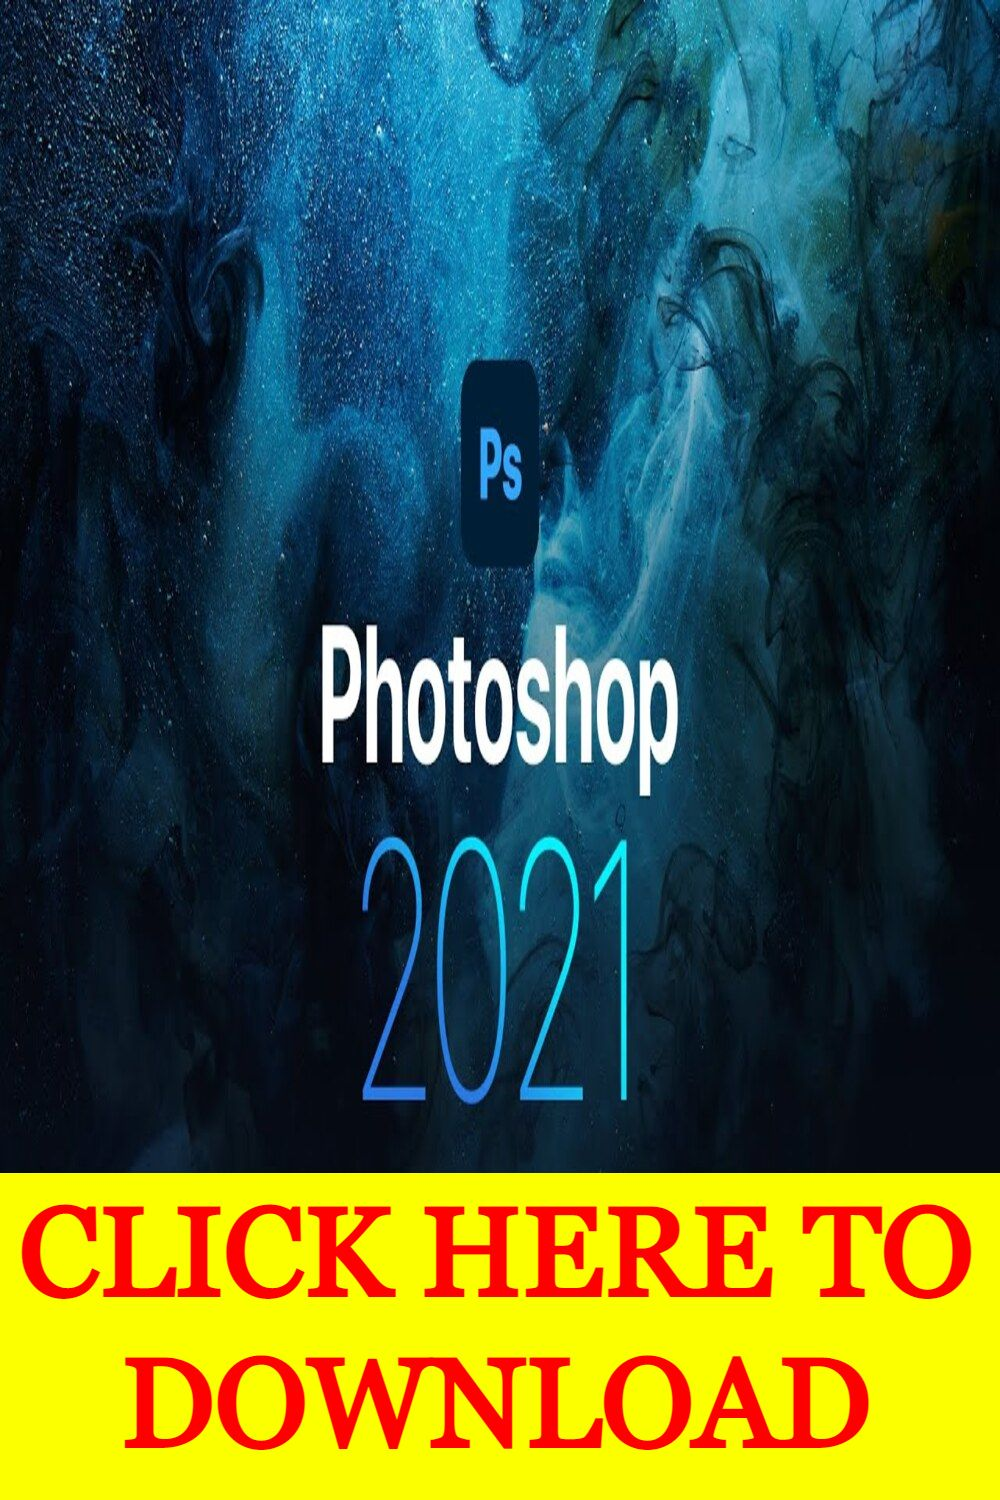 Click here to download adobe 2021 v221094